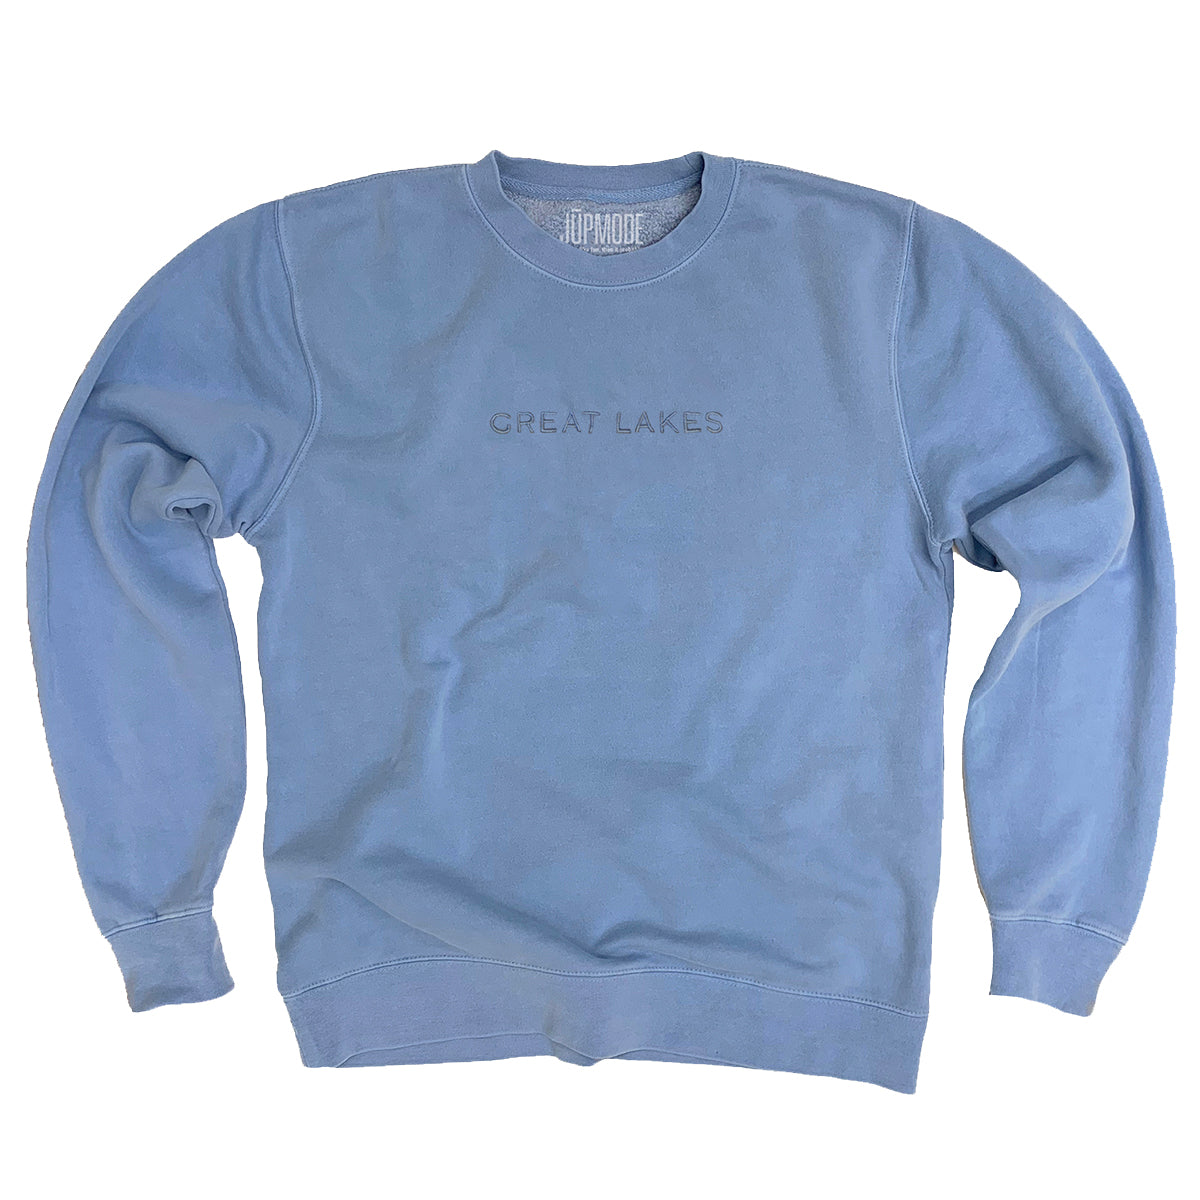 New Release: Great Lakes Embroidered Sweatshirt